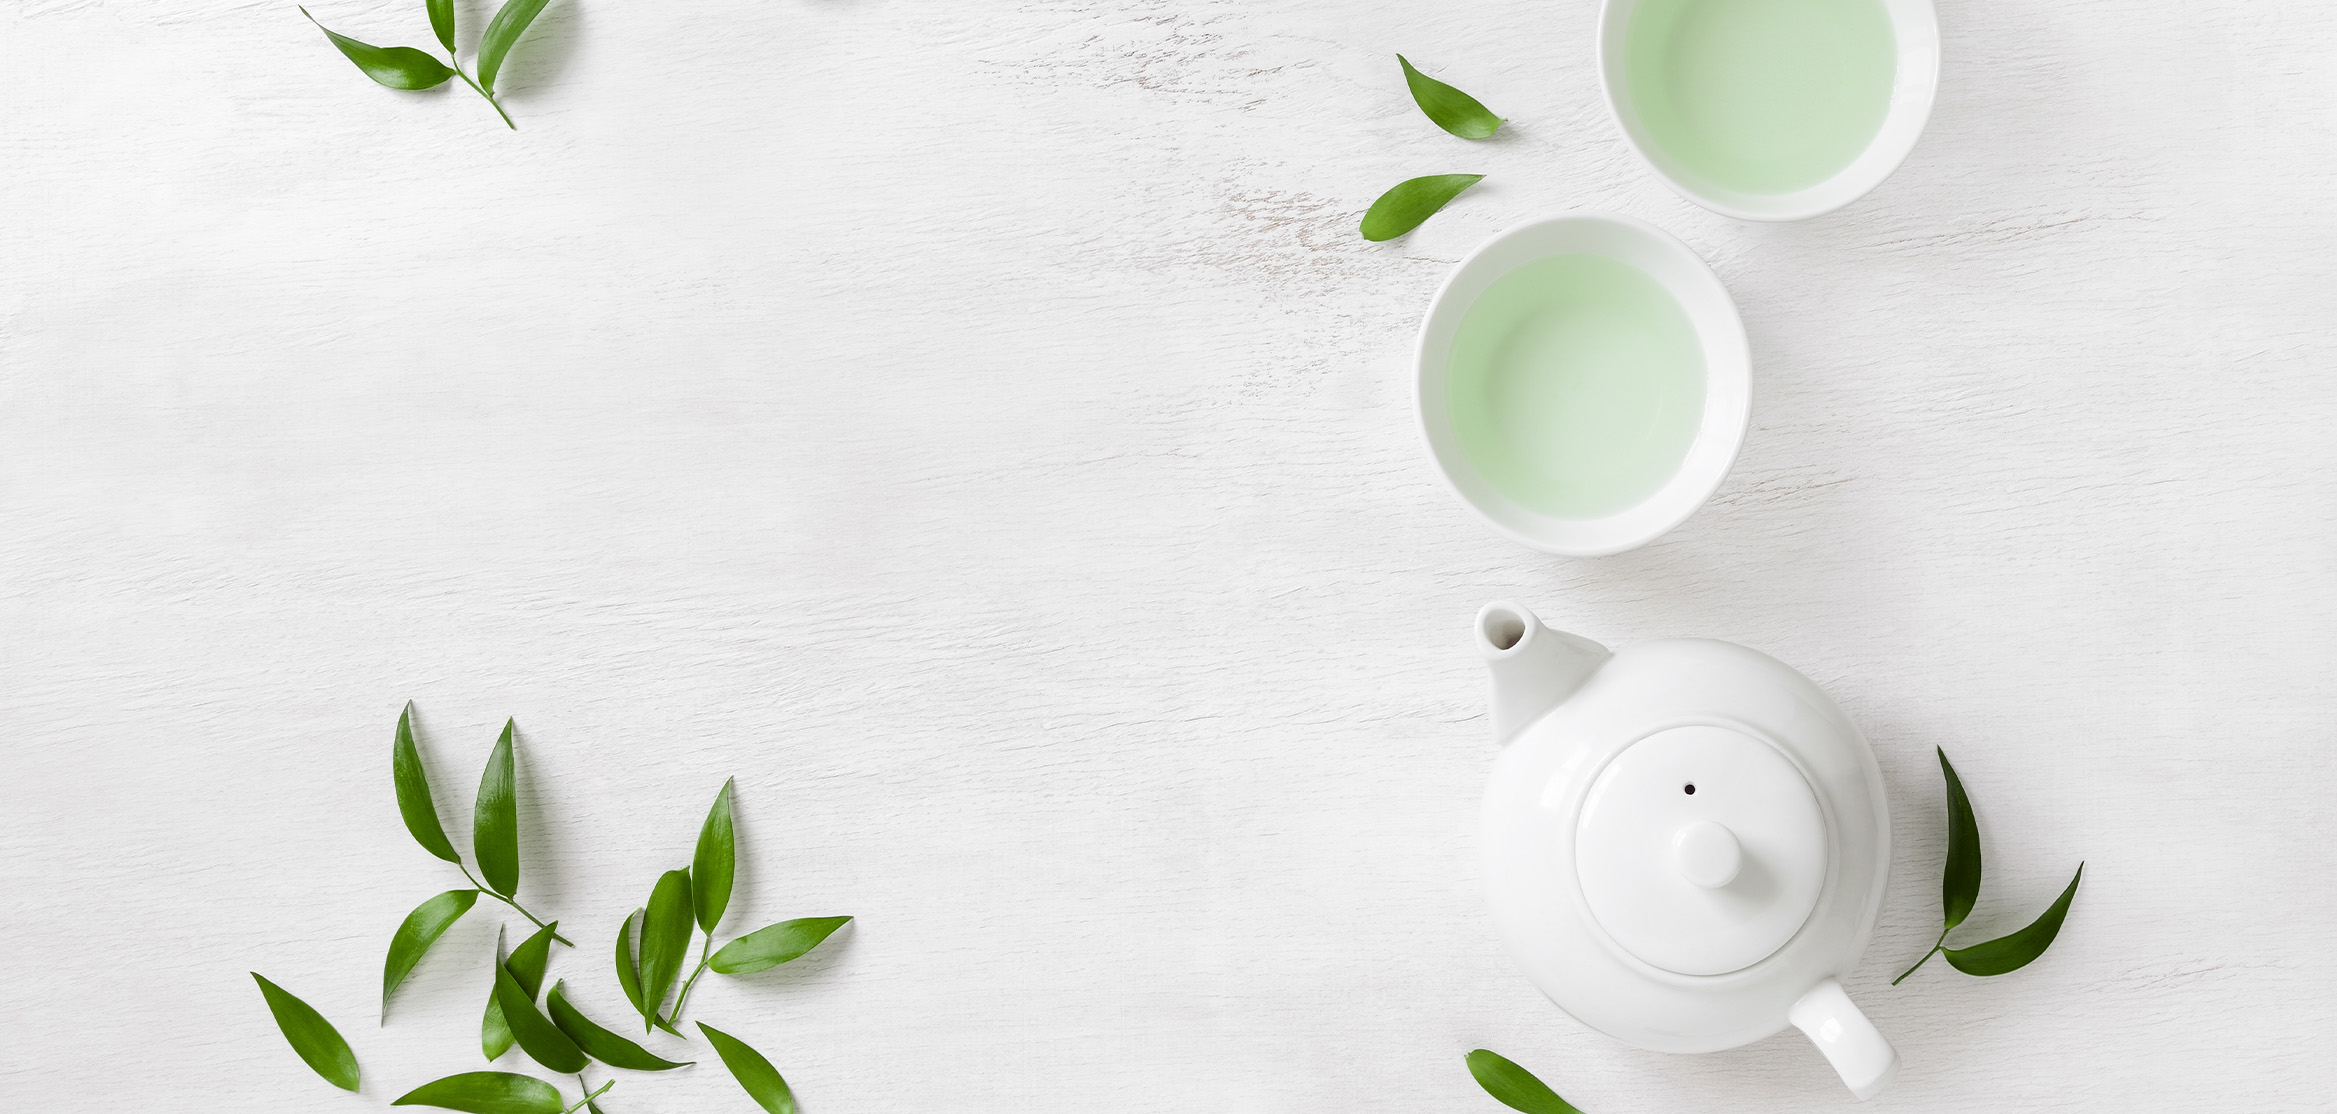 How to brew green tea?